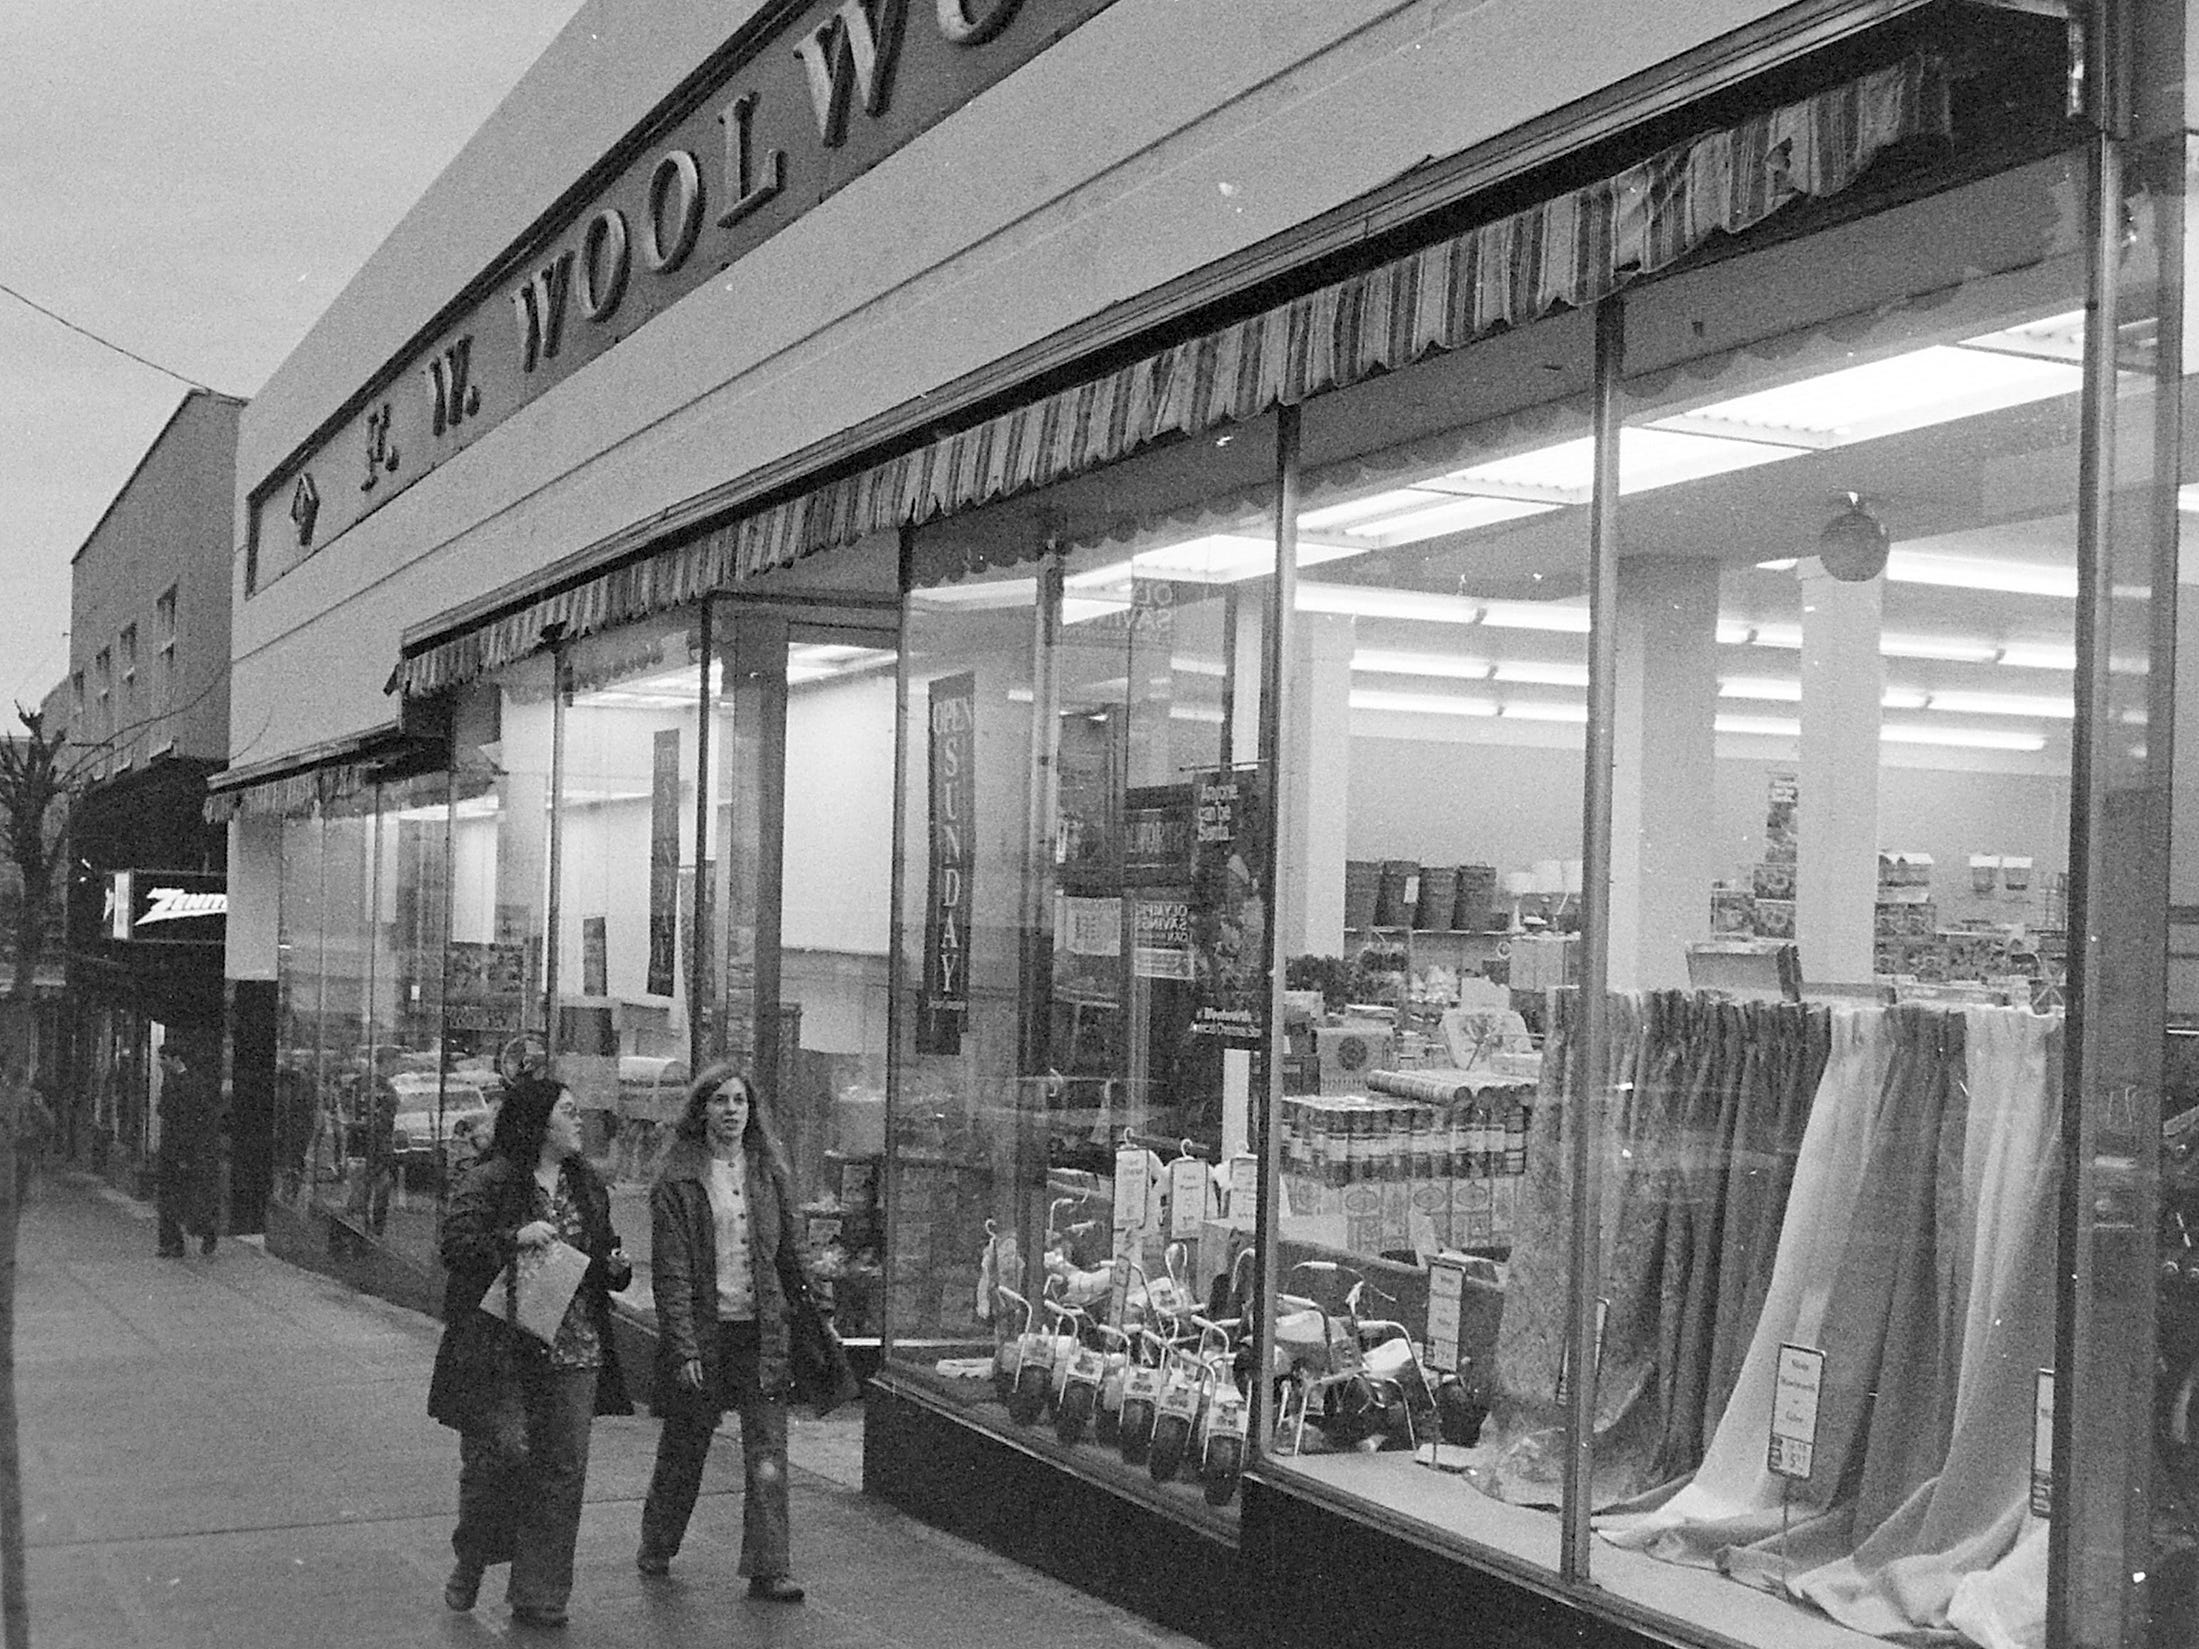 11/10/77